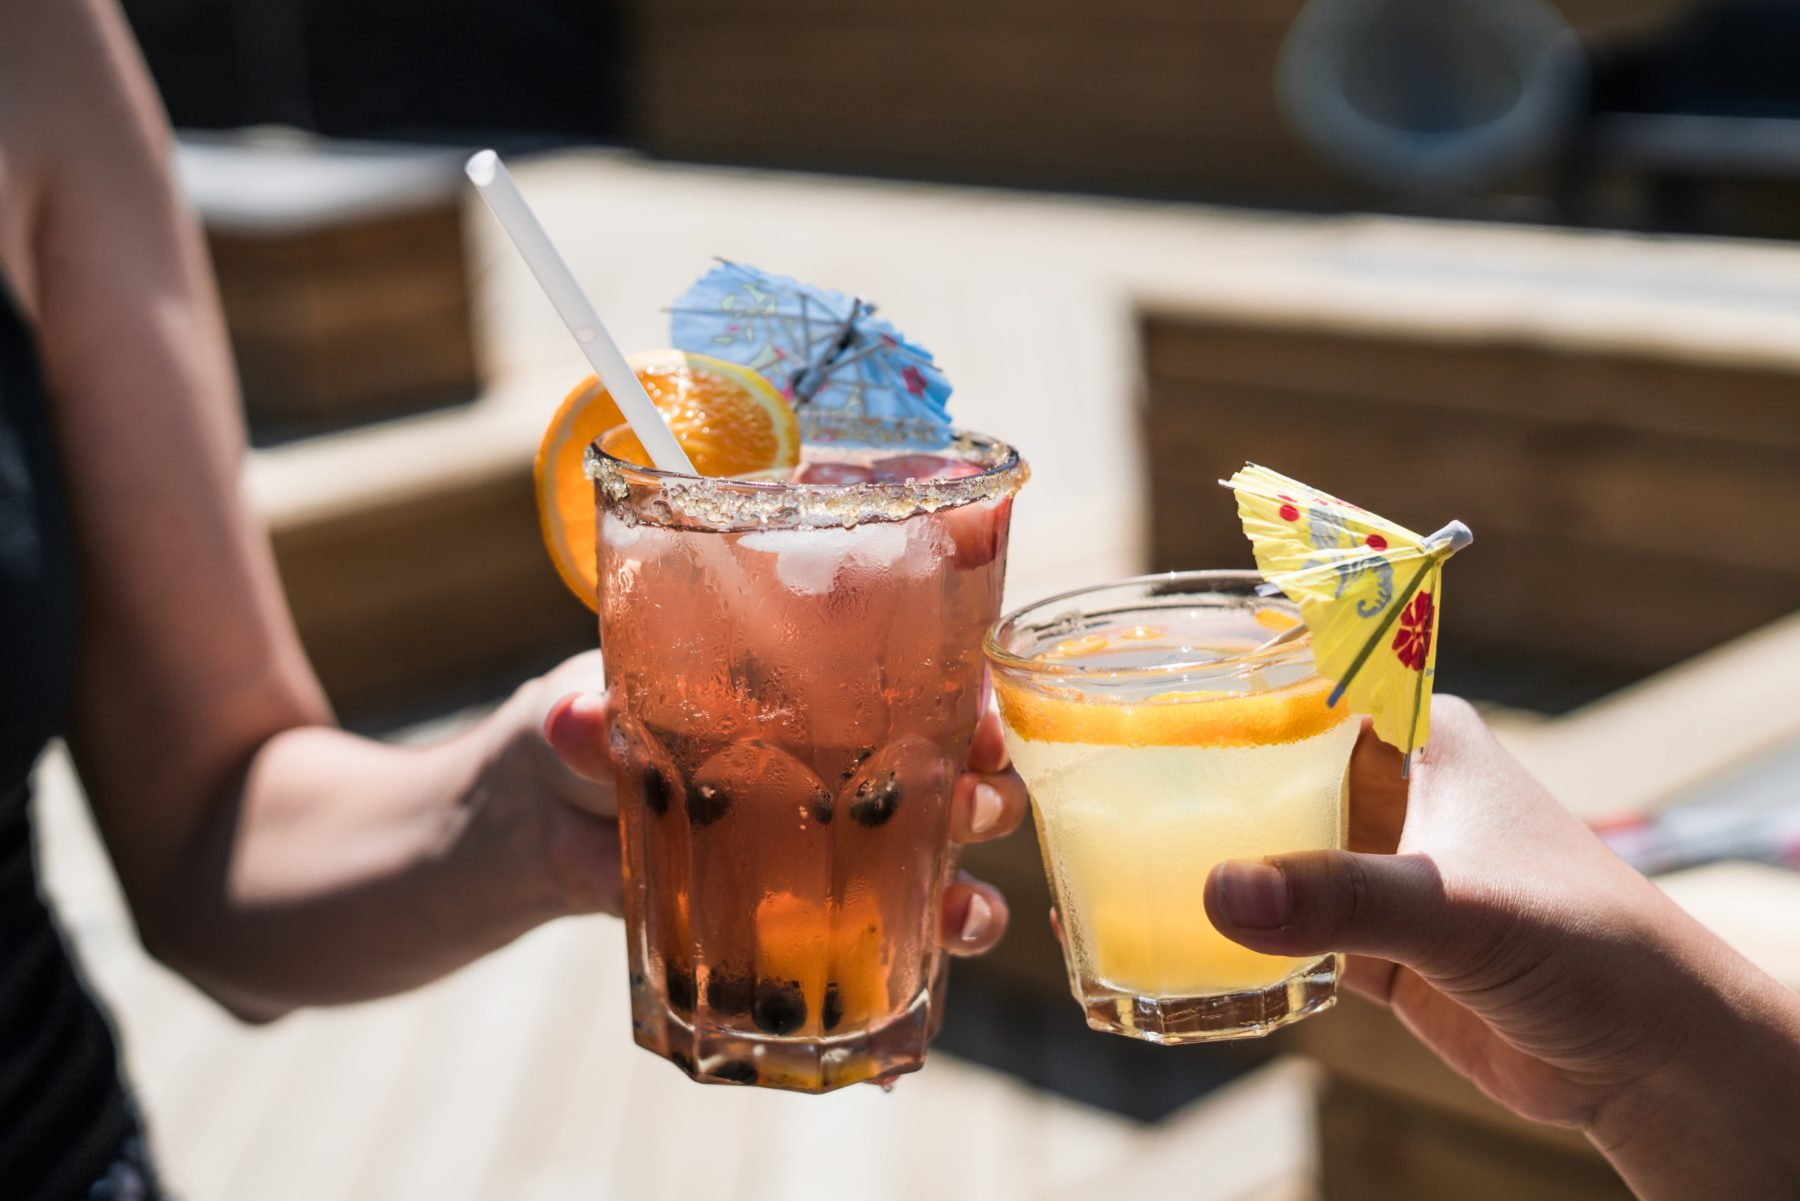 Close-up of two drinks of alcohol with colorful umbrellas.